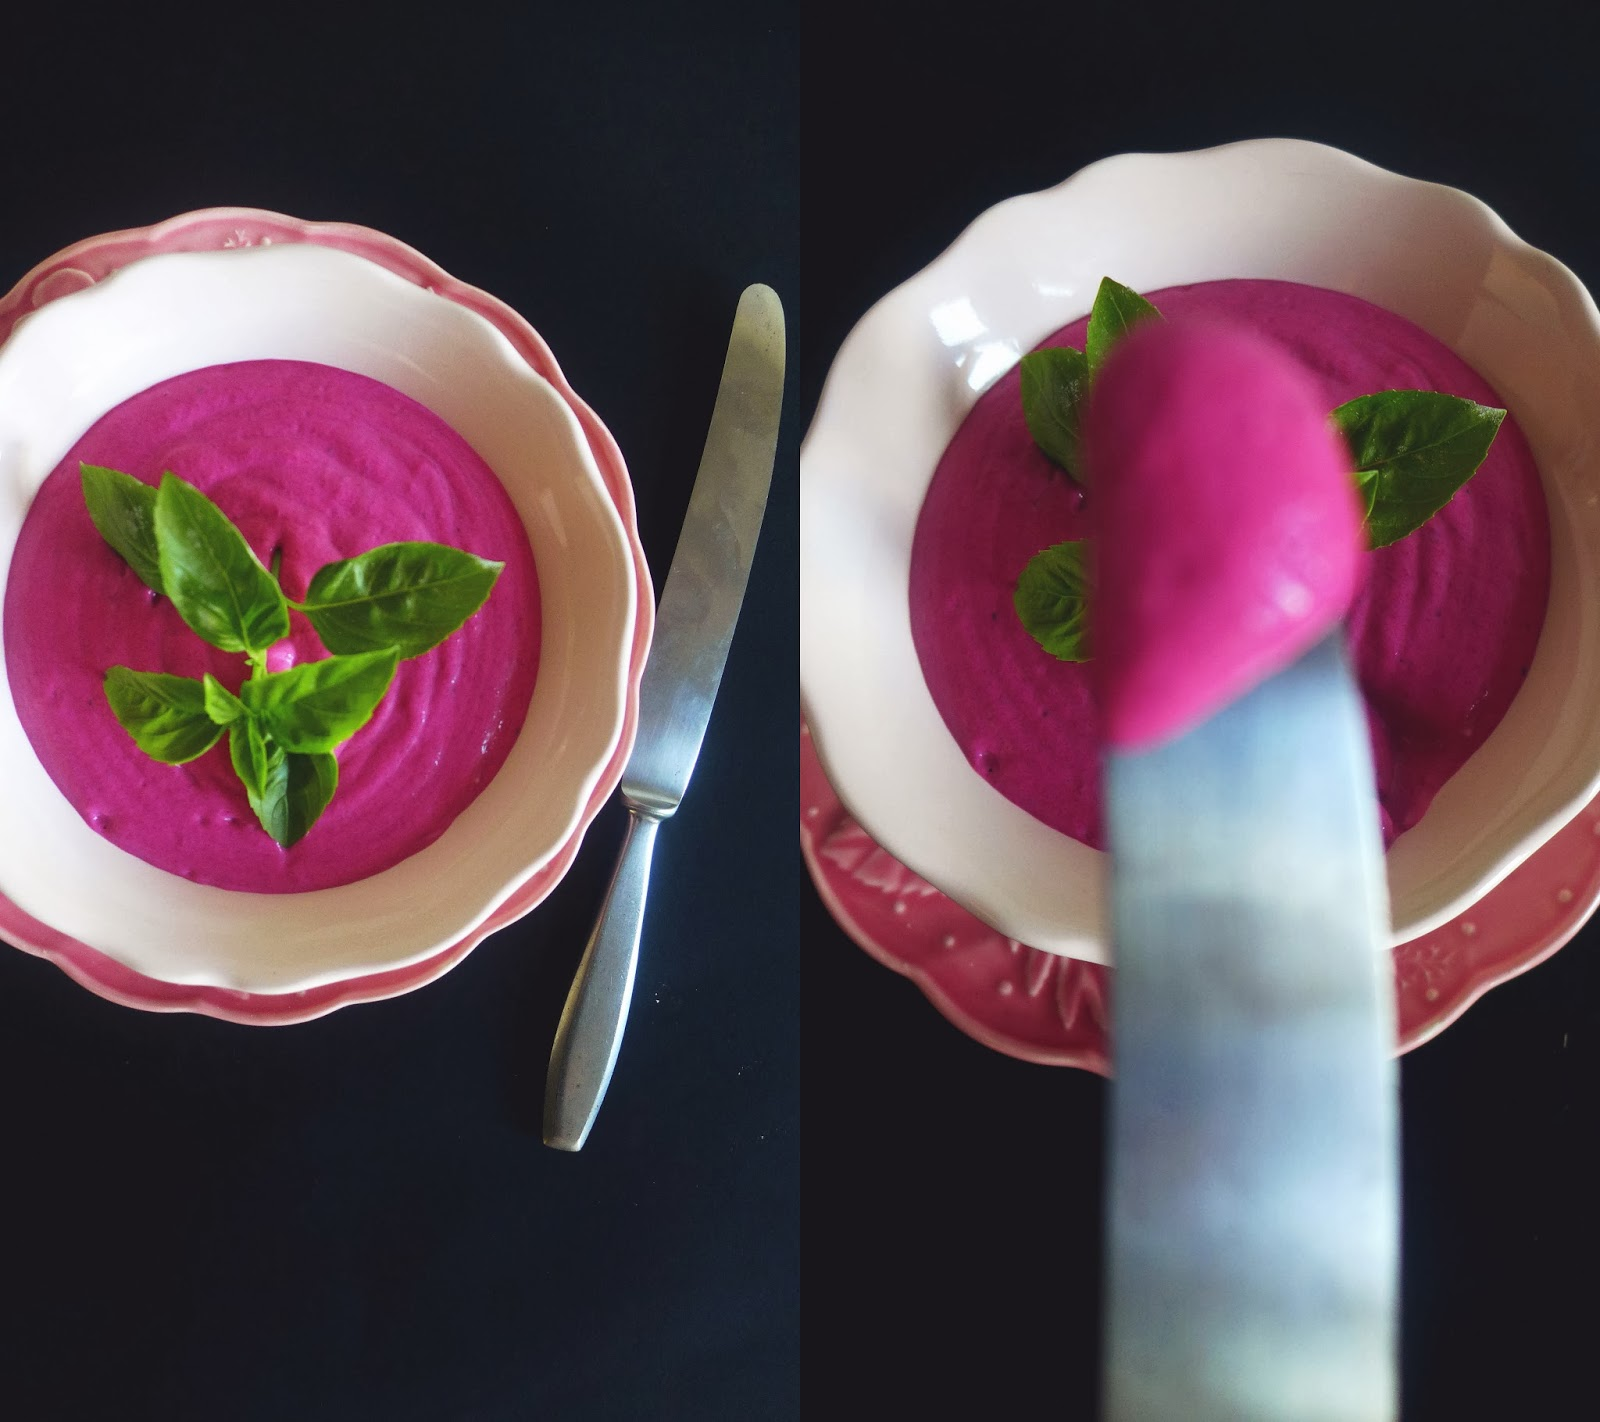 Creme de beterraba/ Beetroot cream